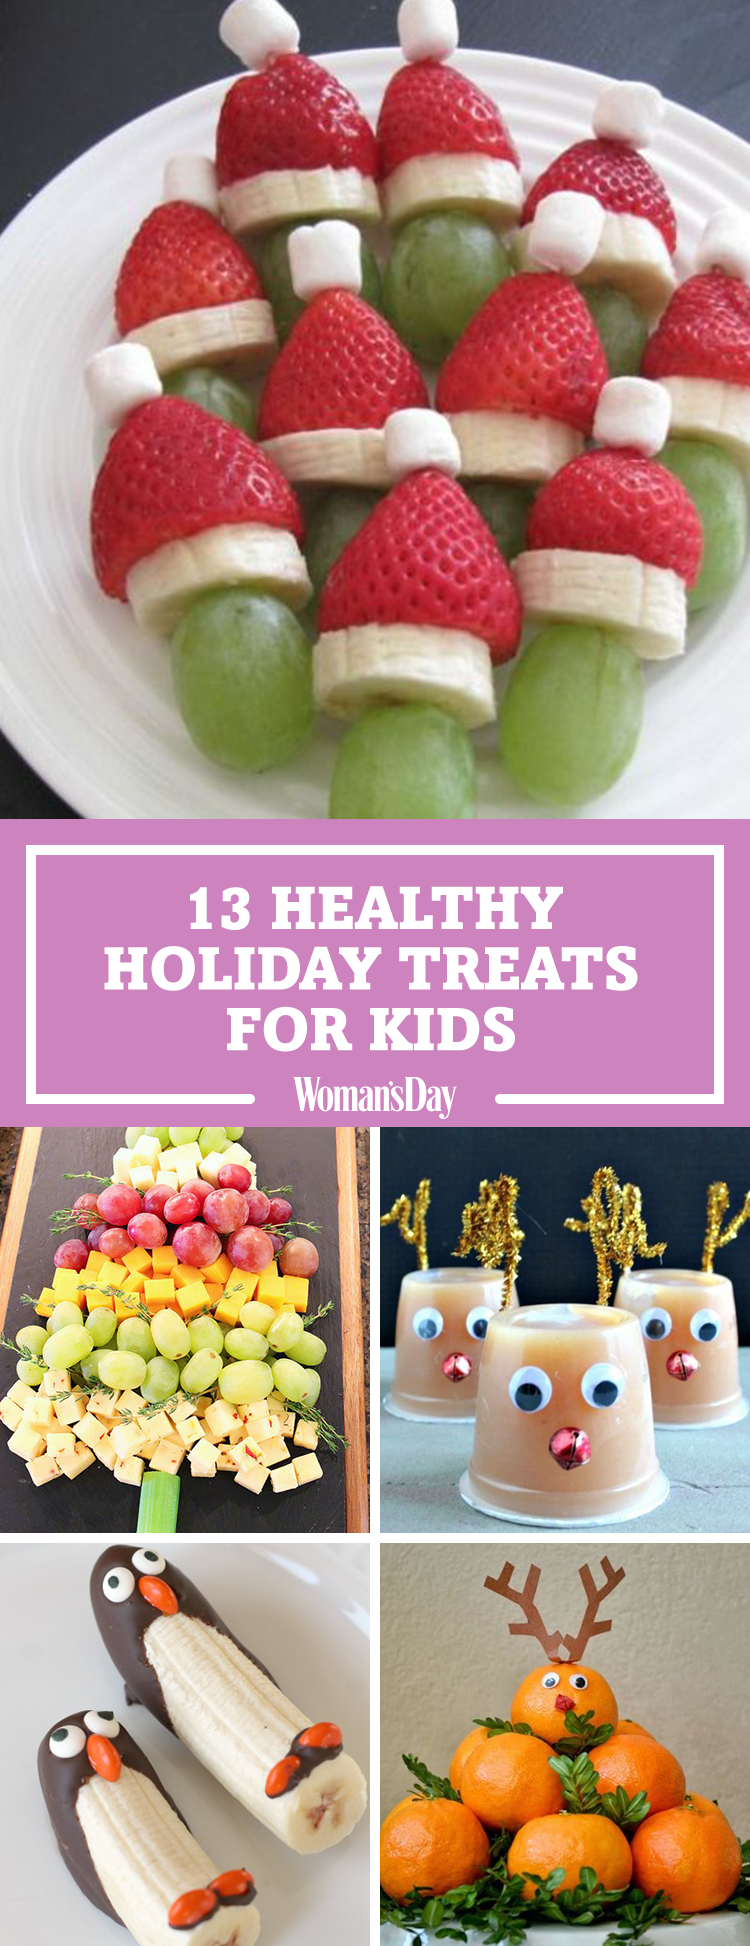 20 Healthy Christmas Snacks for Kids - Easy Ideas for Holiday Snack ...